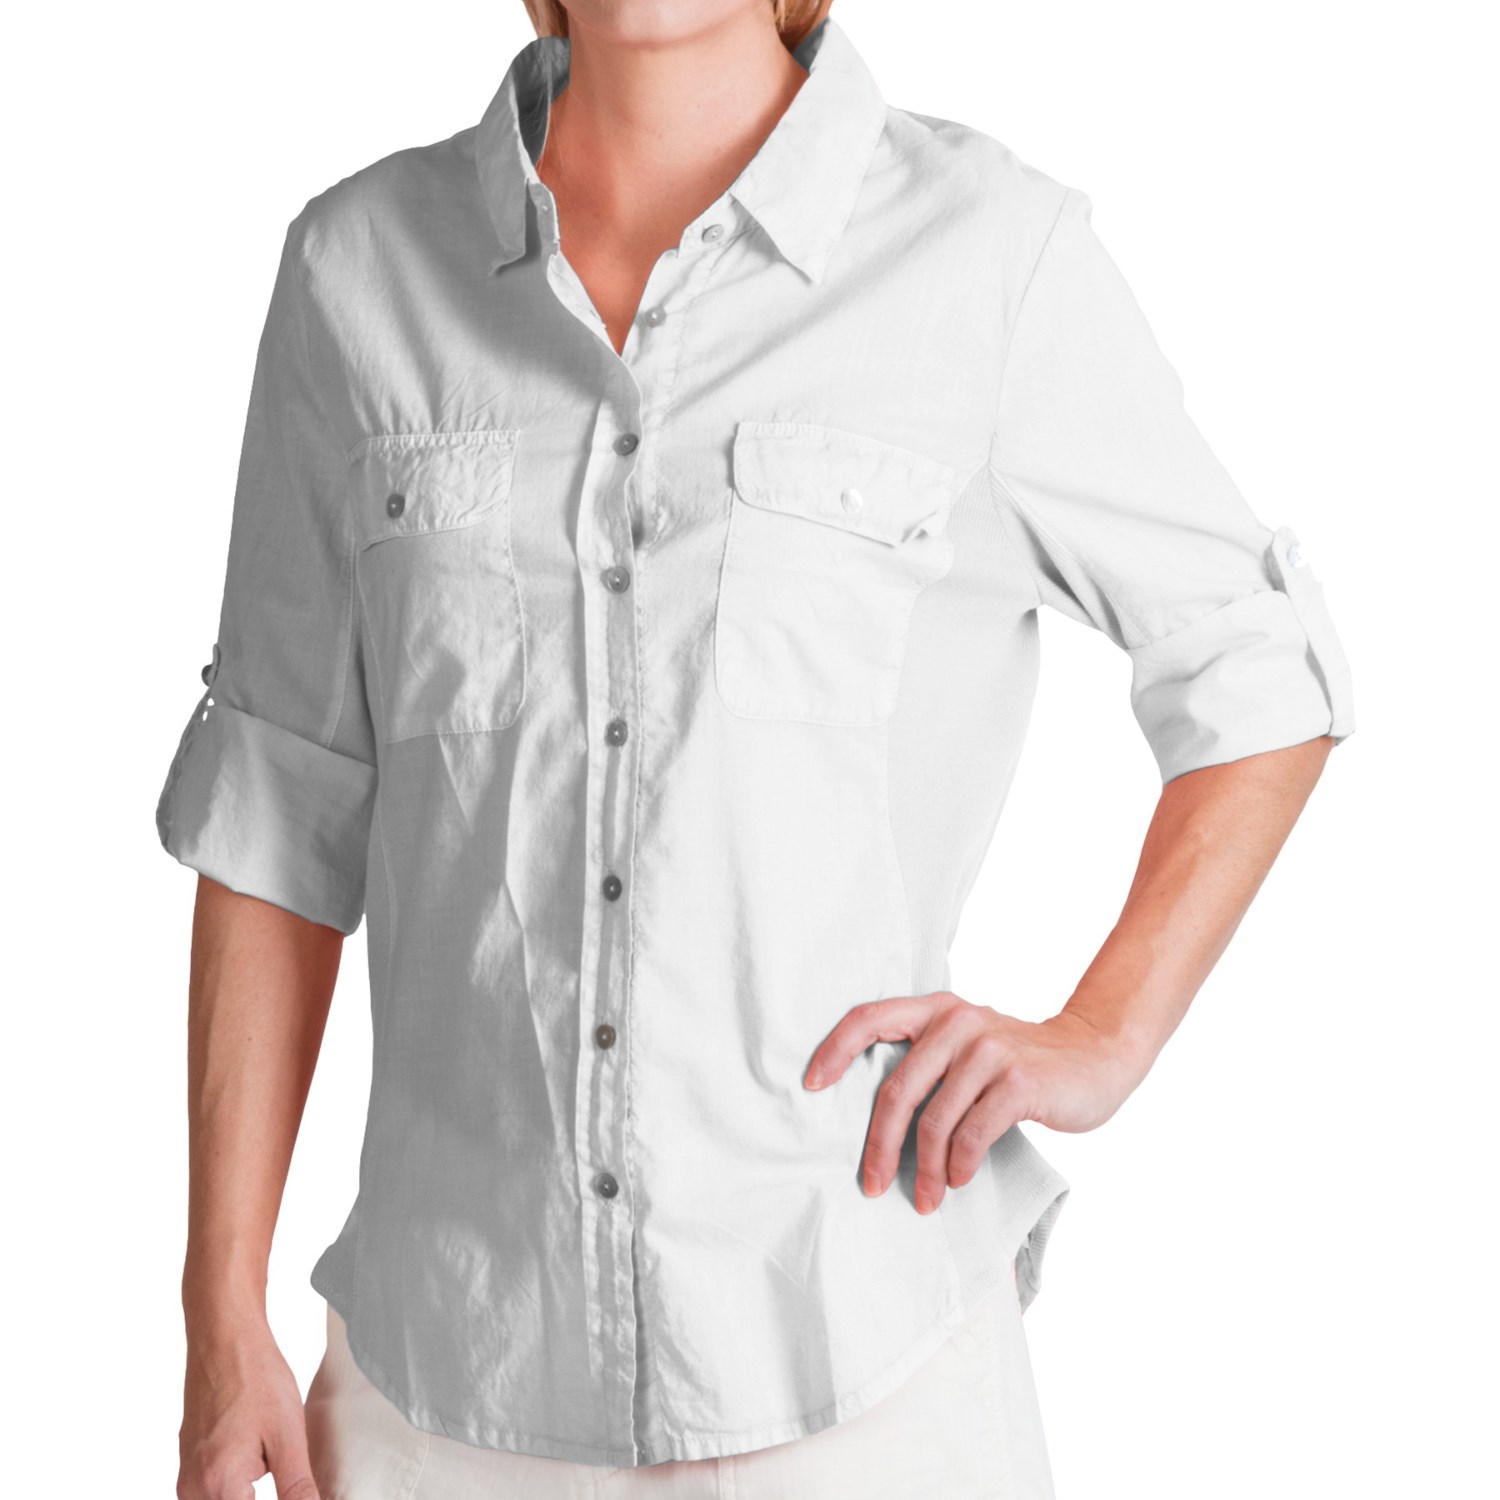 Roll Up Sleeve Shirts. invalid category id. Roll Up Sleeve Shirts. Showing 40 of results that match your query. Search Product Result. Product - ZANZEA Women's Off Shoulder Long Sleeve Loose Tops. Product - Women Lace Sleeves Plus size Shirt and Blouse Black. Product Image. Price $ .